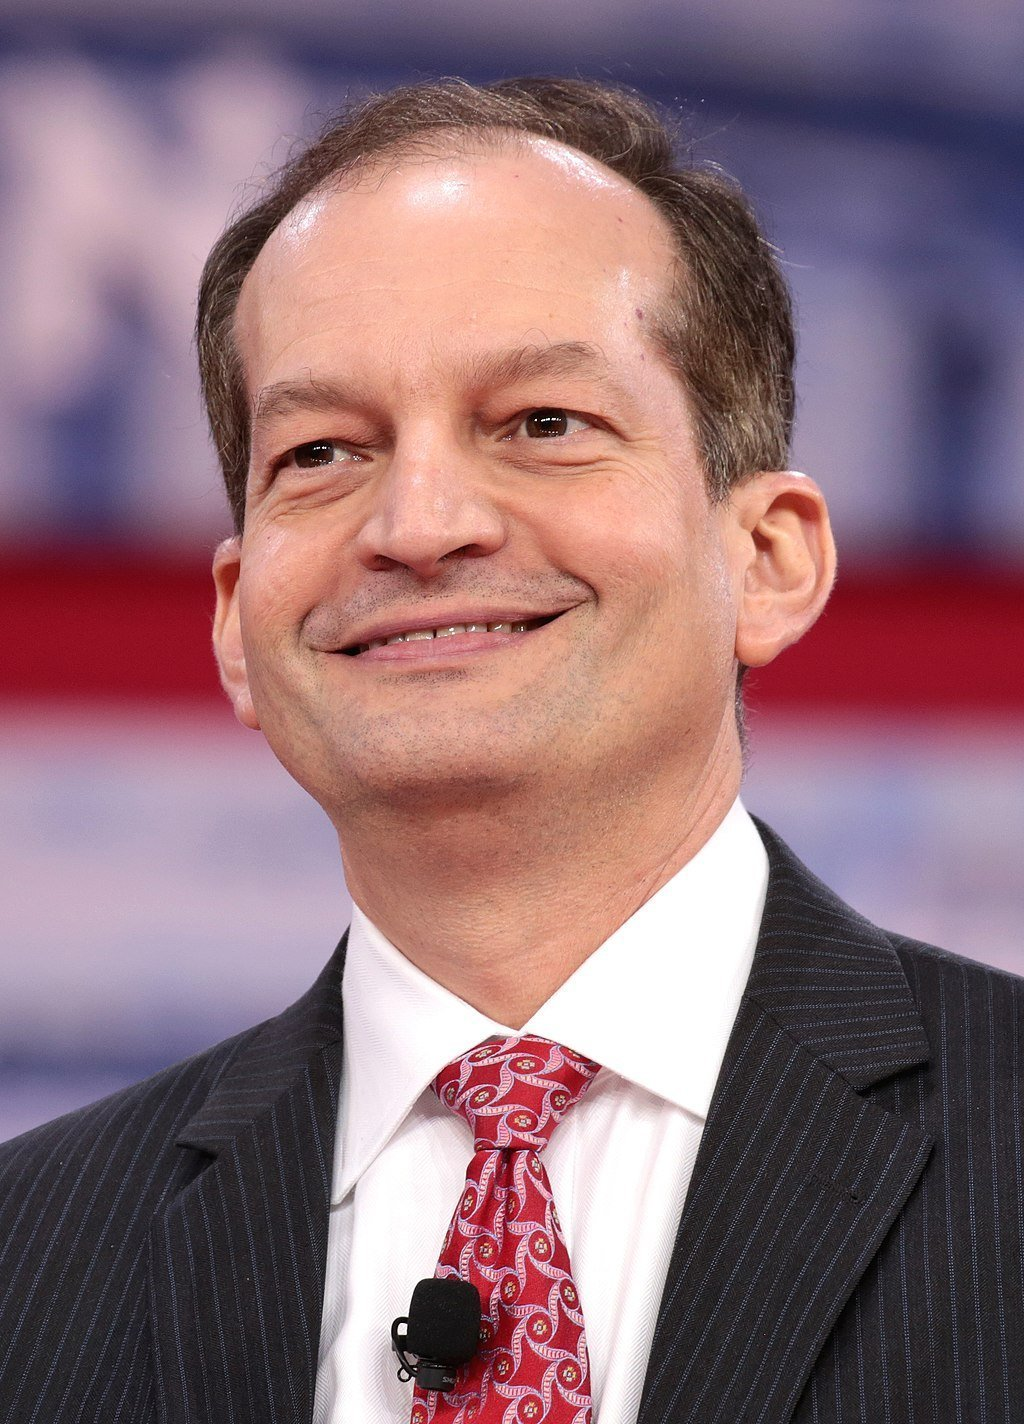 Alexander Acosta parla al CPAC 2018 a National Harbor, nel Maryland.